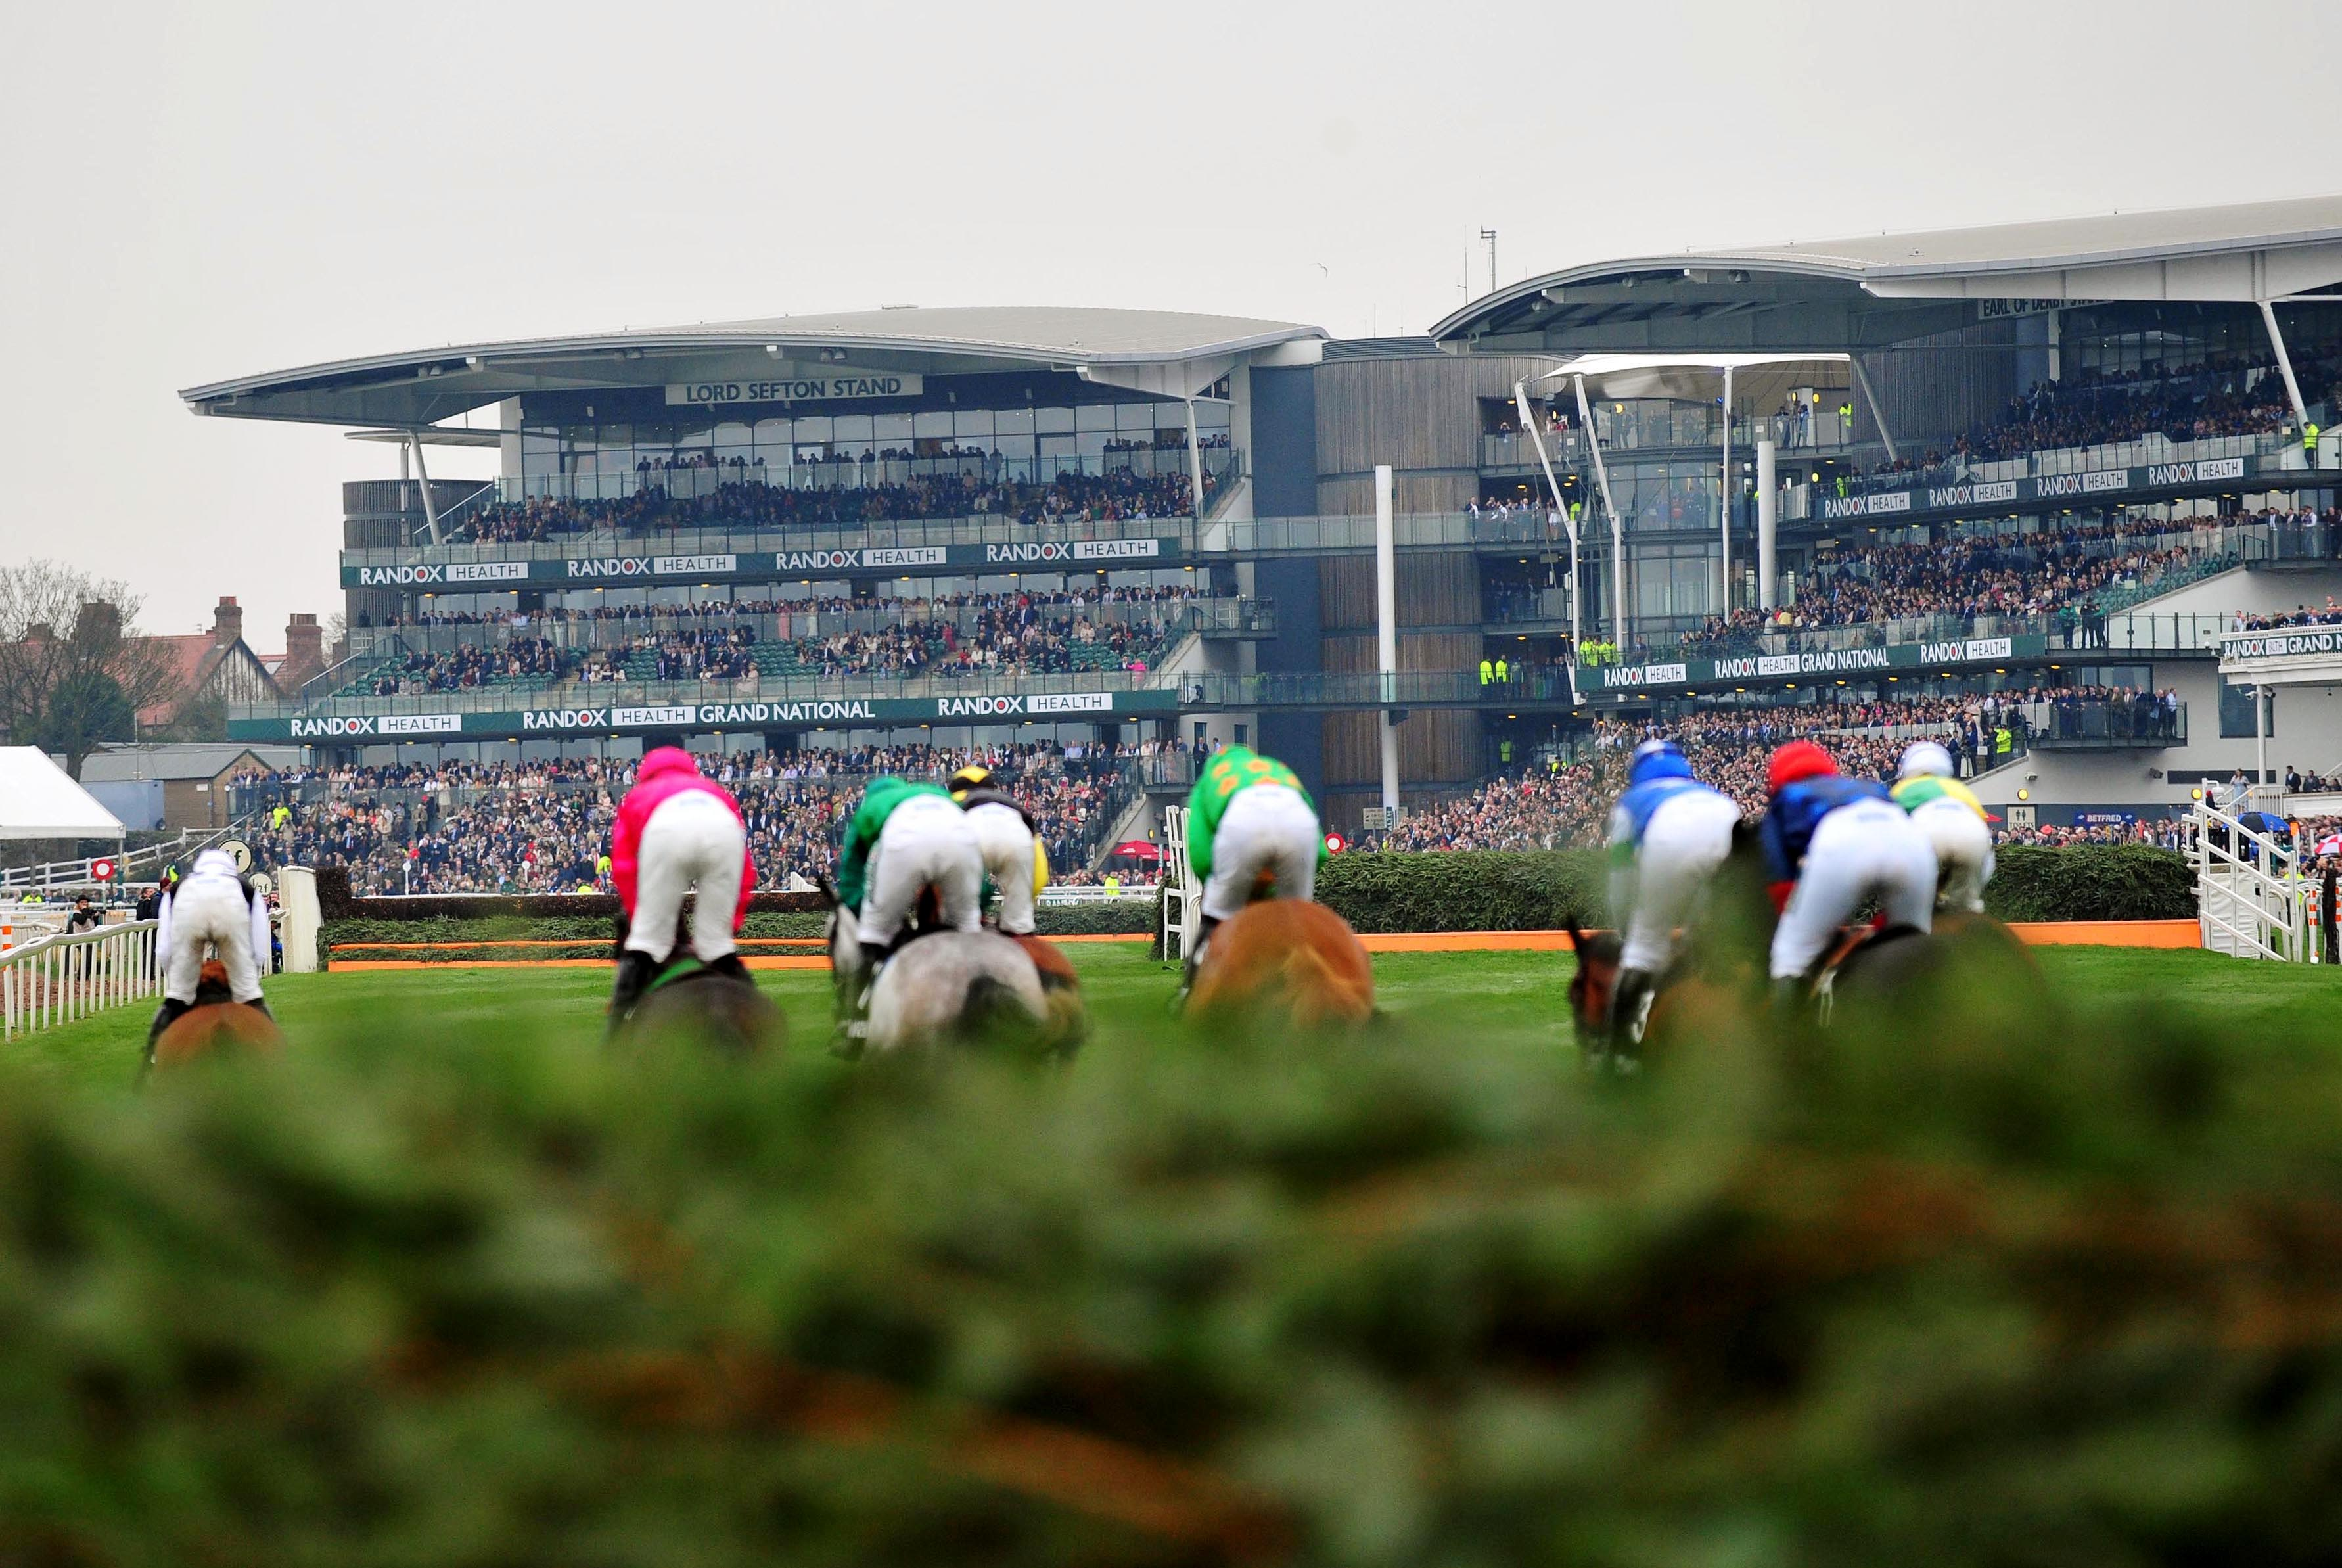 The Grand National was first run in 1839 but this year's race will not take place (Focusonracing0